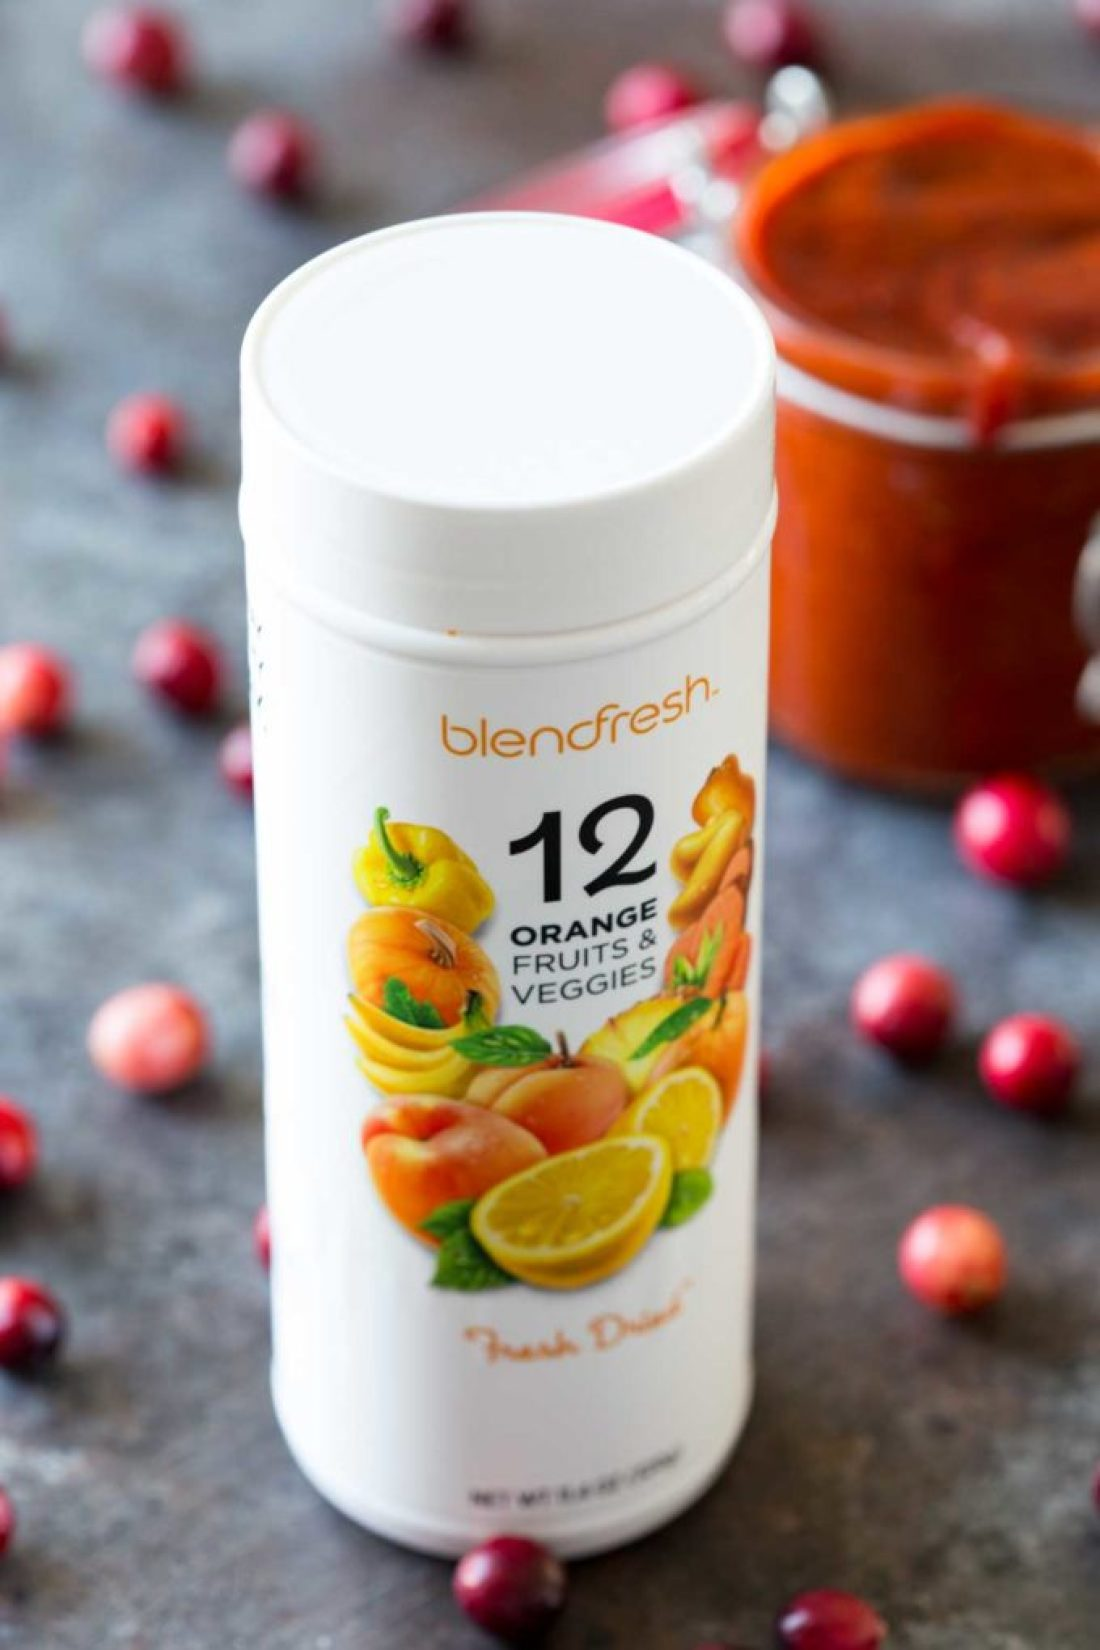 Orange Fusion, a blendfresh way of getting health into your recipes